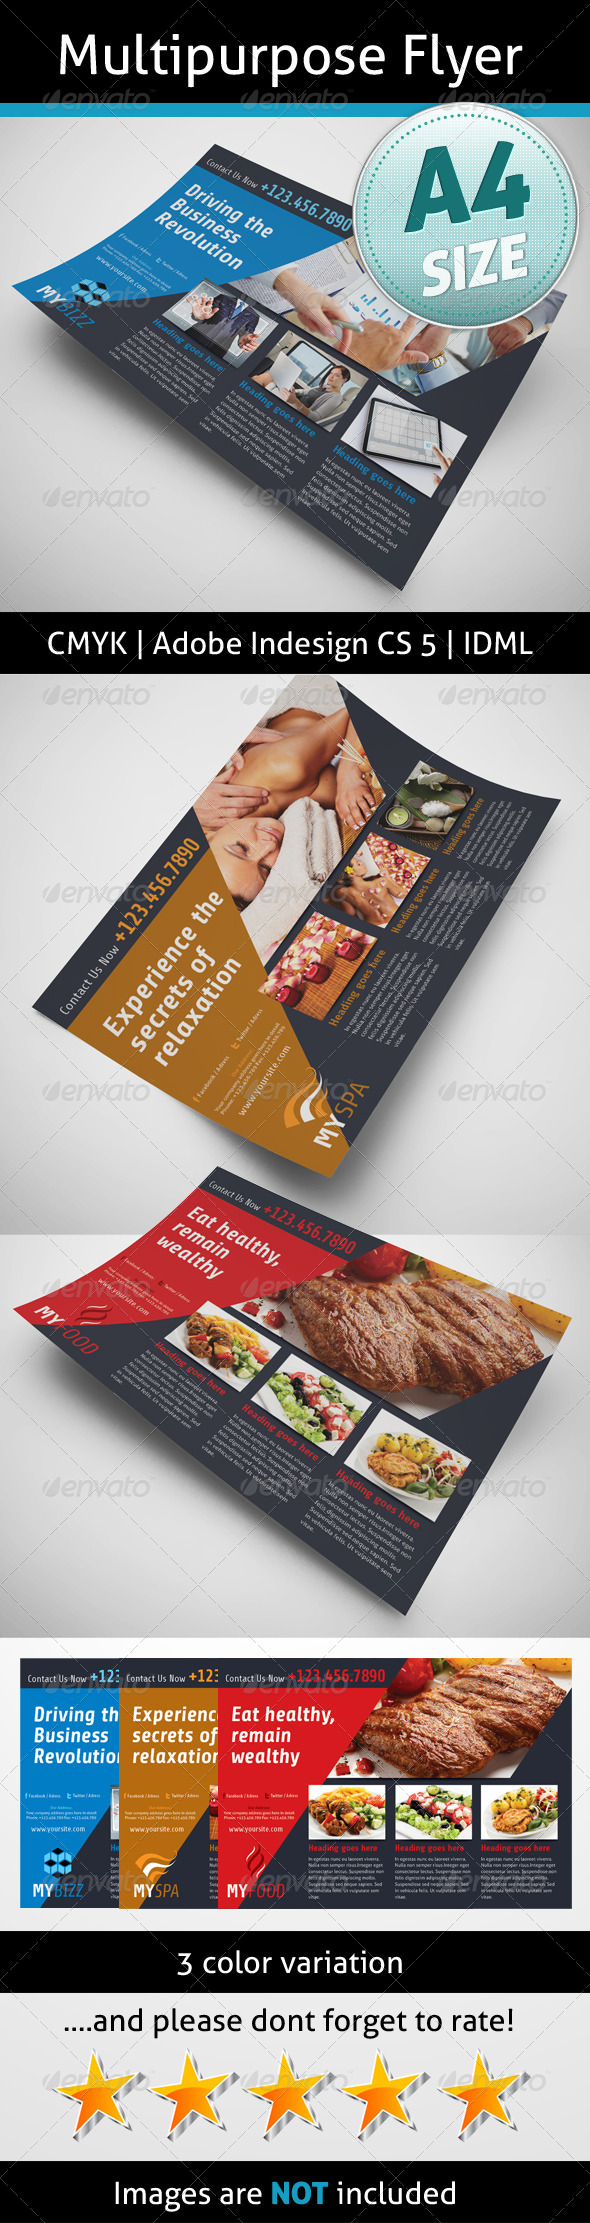 GraphicRiver Multipurpose Flyer 5237173